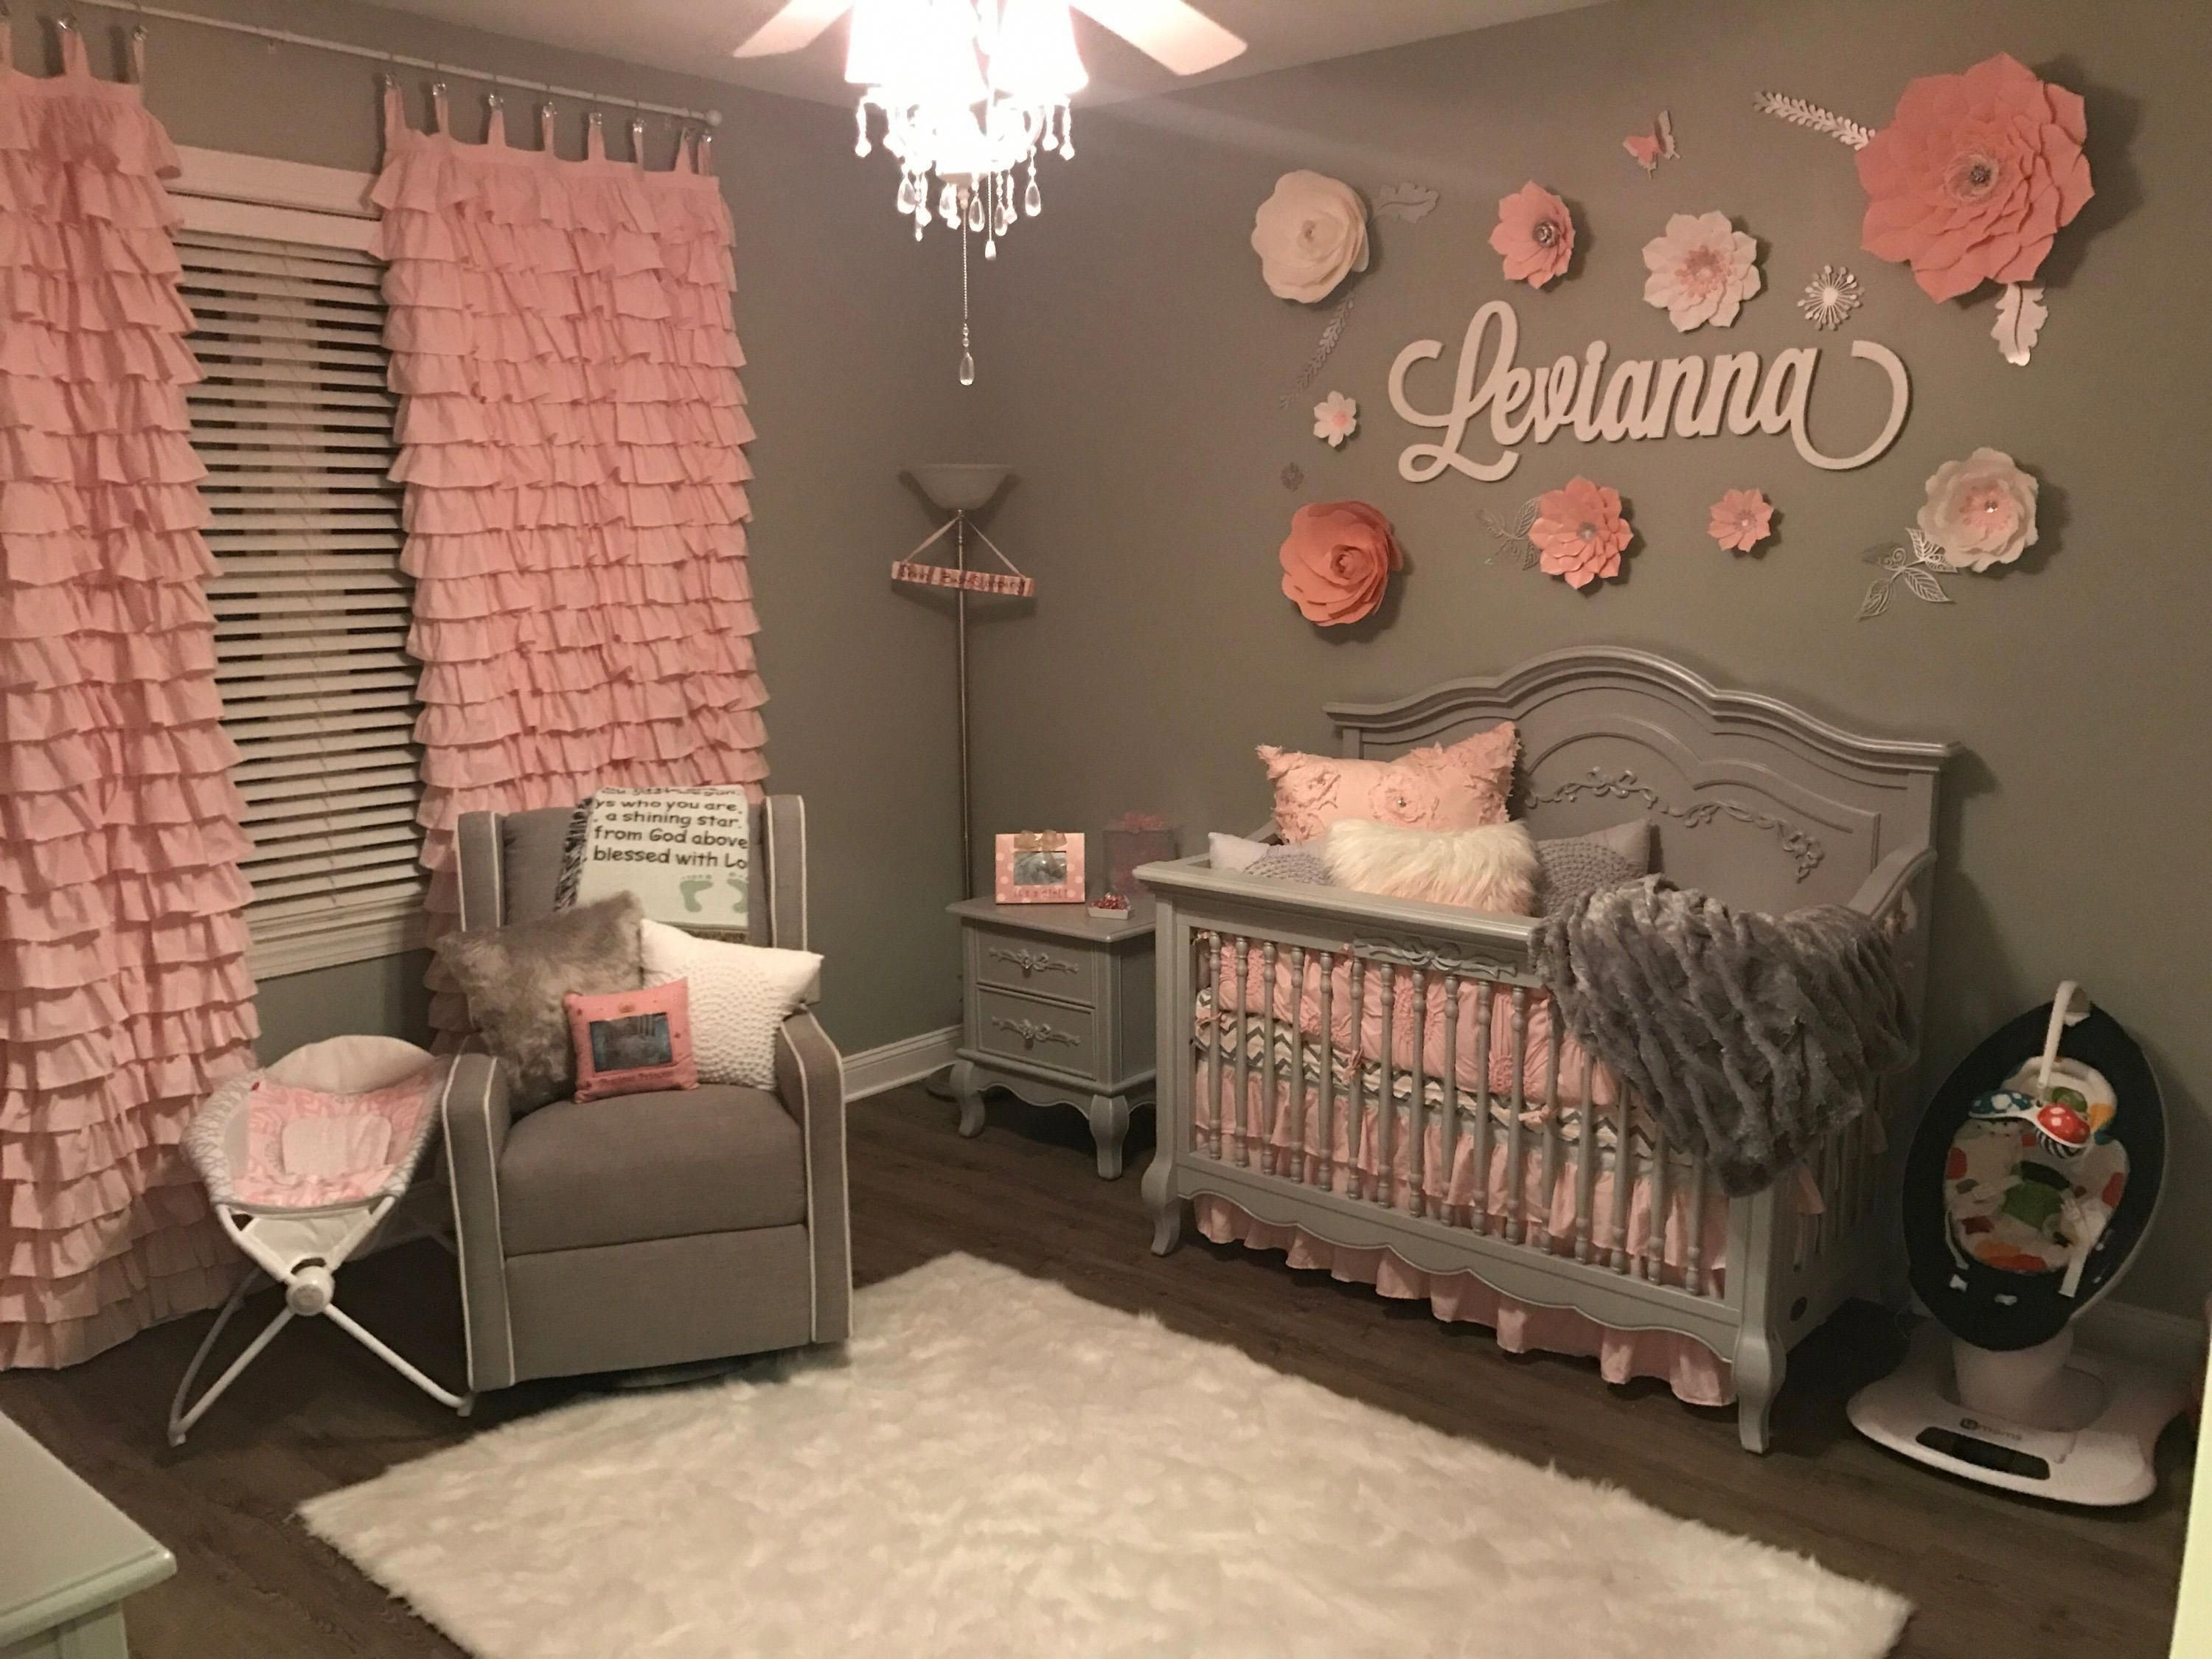 Baby Girl Bedroom Ideas Luxury Baby Girl Grey and Pink Bedroom Handmade Drapes and Flowers